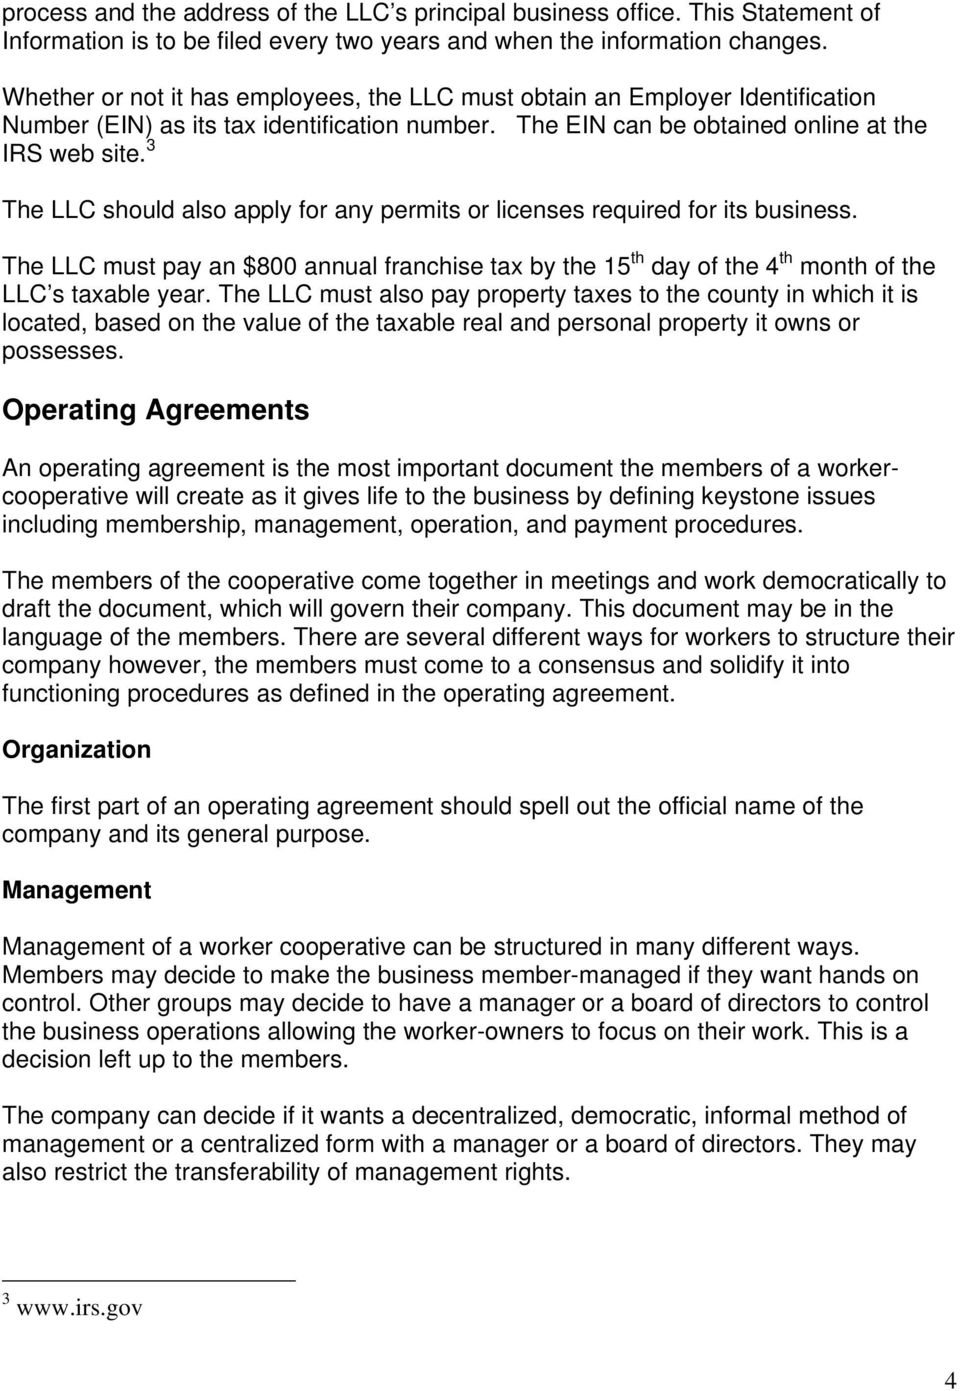 3 The LLC should also apply for any permits or licenses required for its business. The LLC must pay an $800 annual franchise tax by the 15 th day of the 4 th month of the LLC s taxable year.